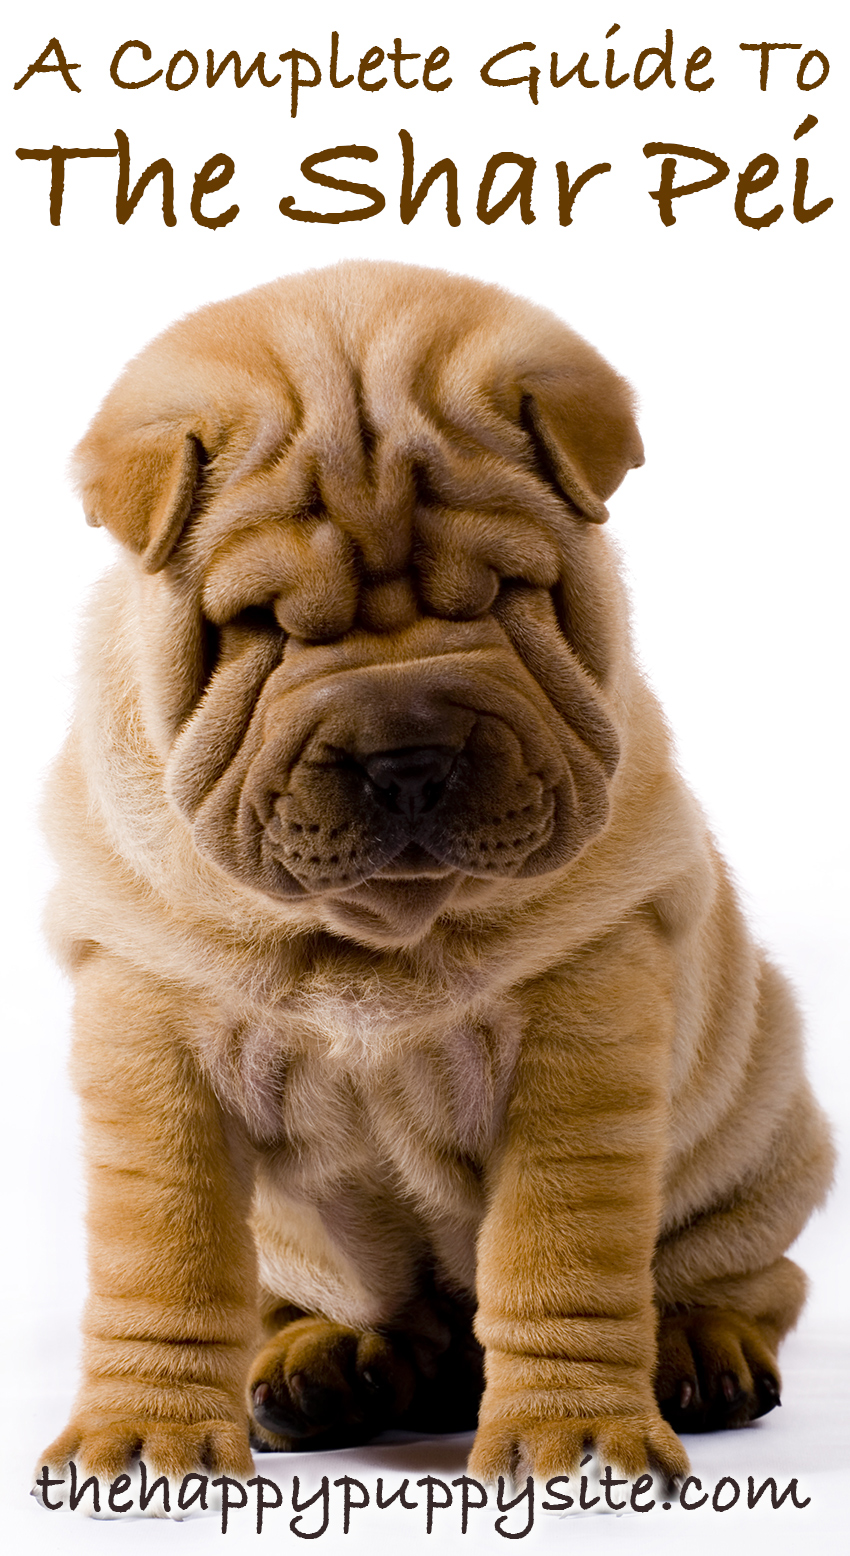 Do Shar Pei Make Good Pets? Let's find out!